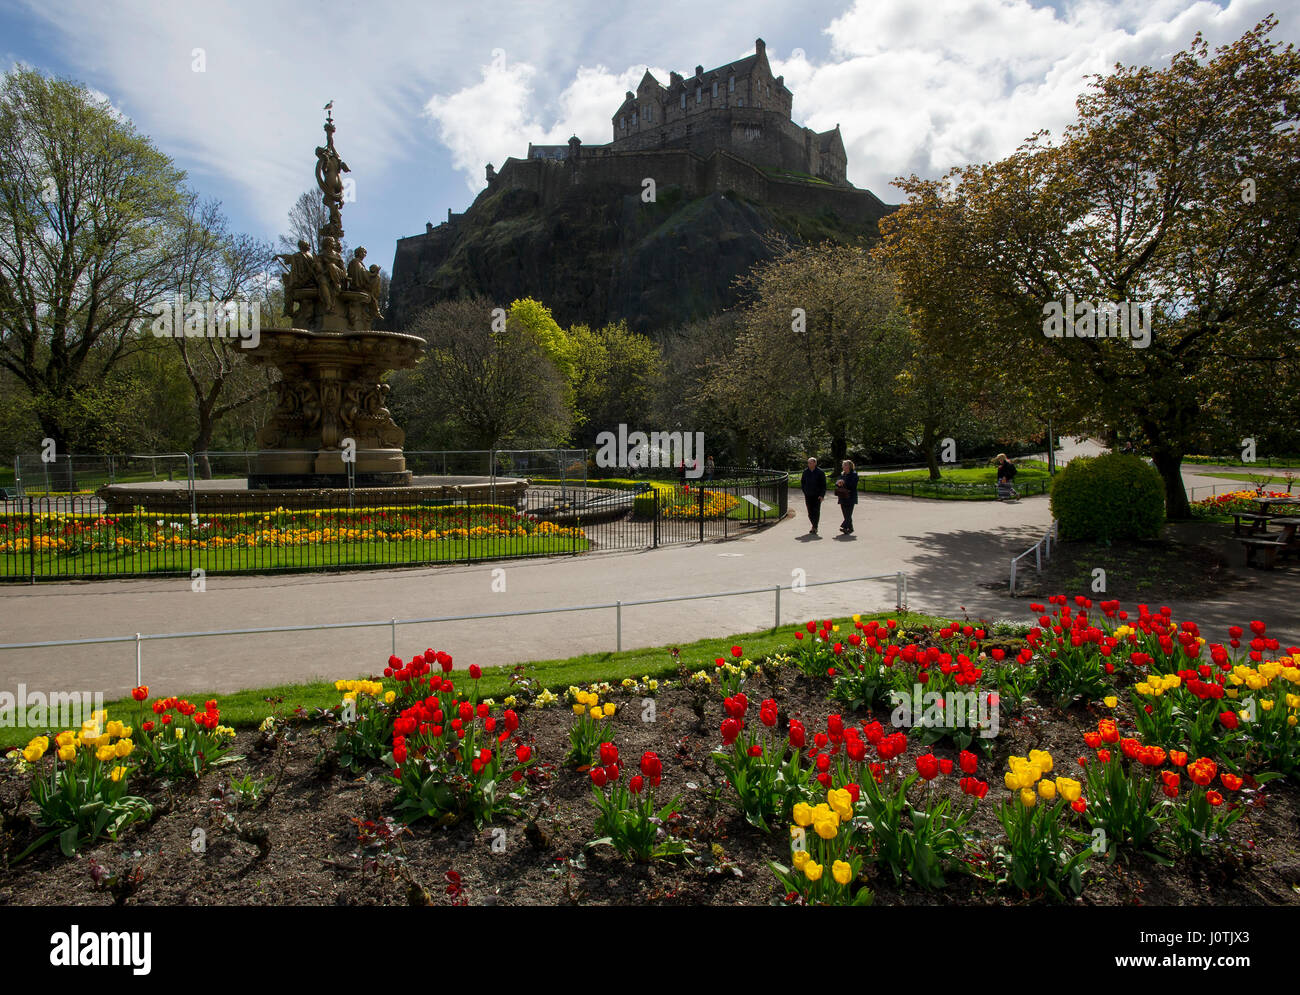 The Ross fountain in West Princes Street Gardens and  Edinburgh Castle. - Stock Image